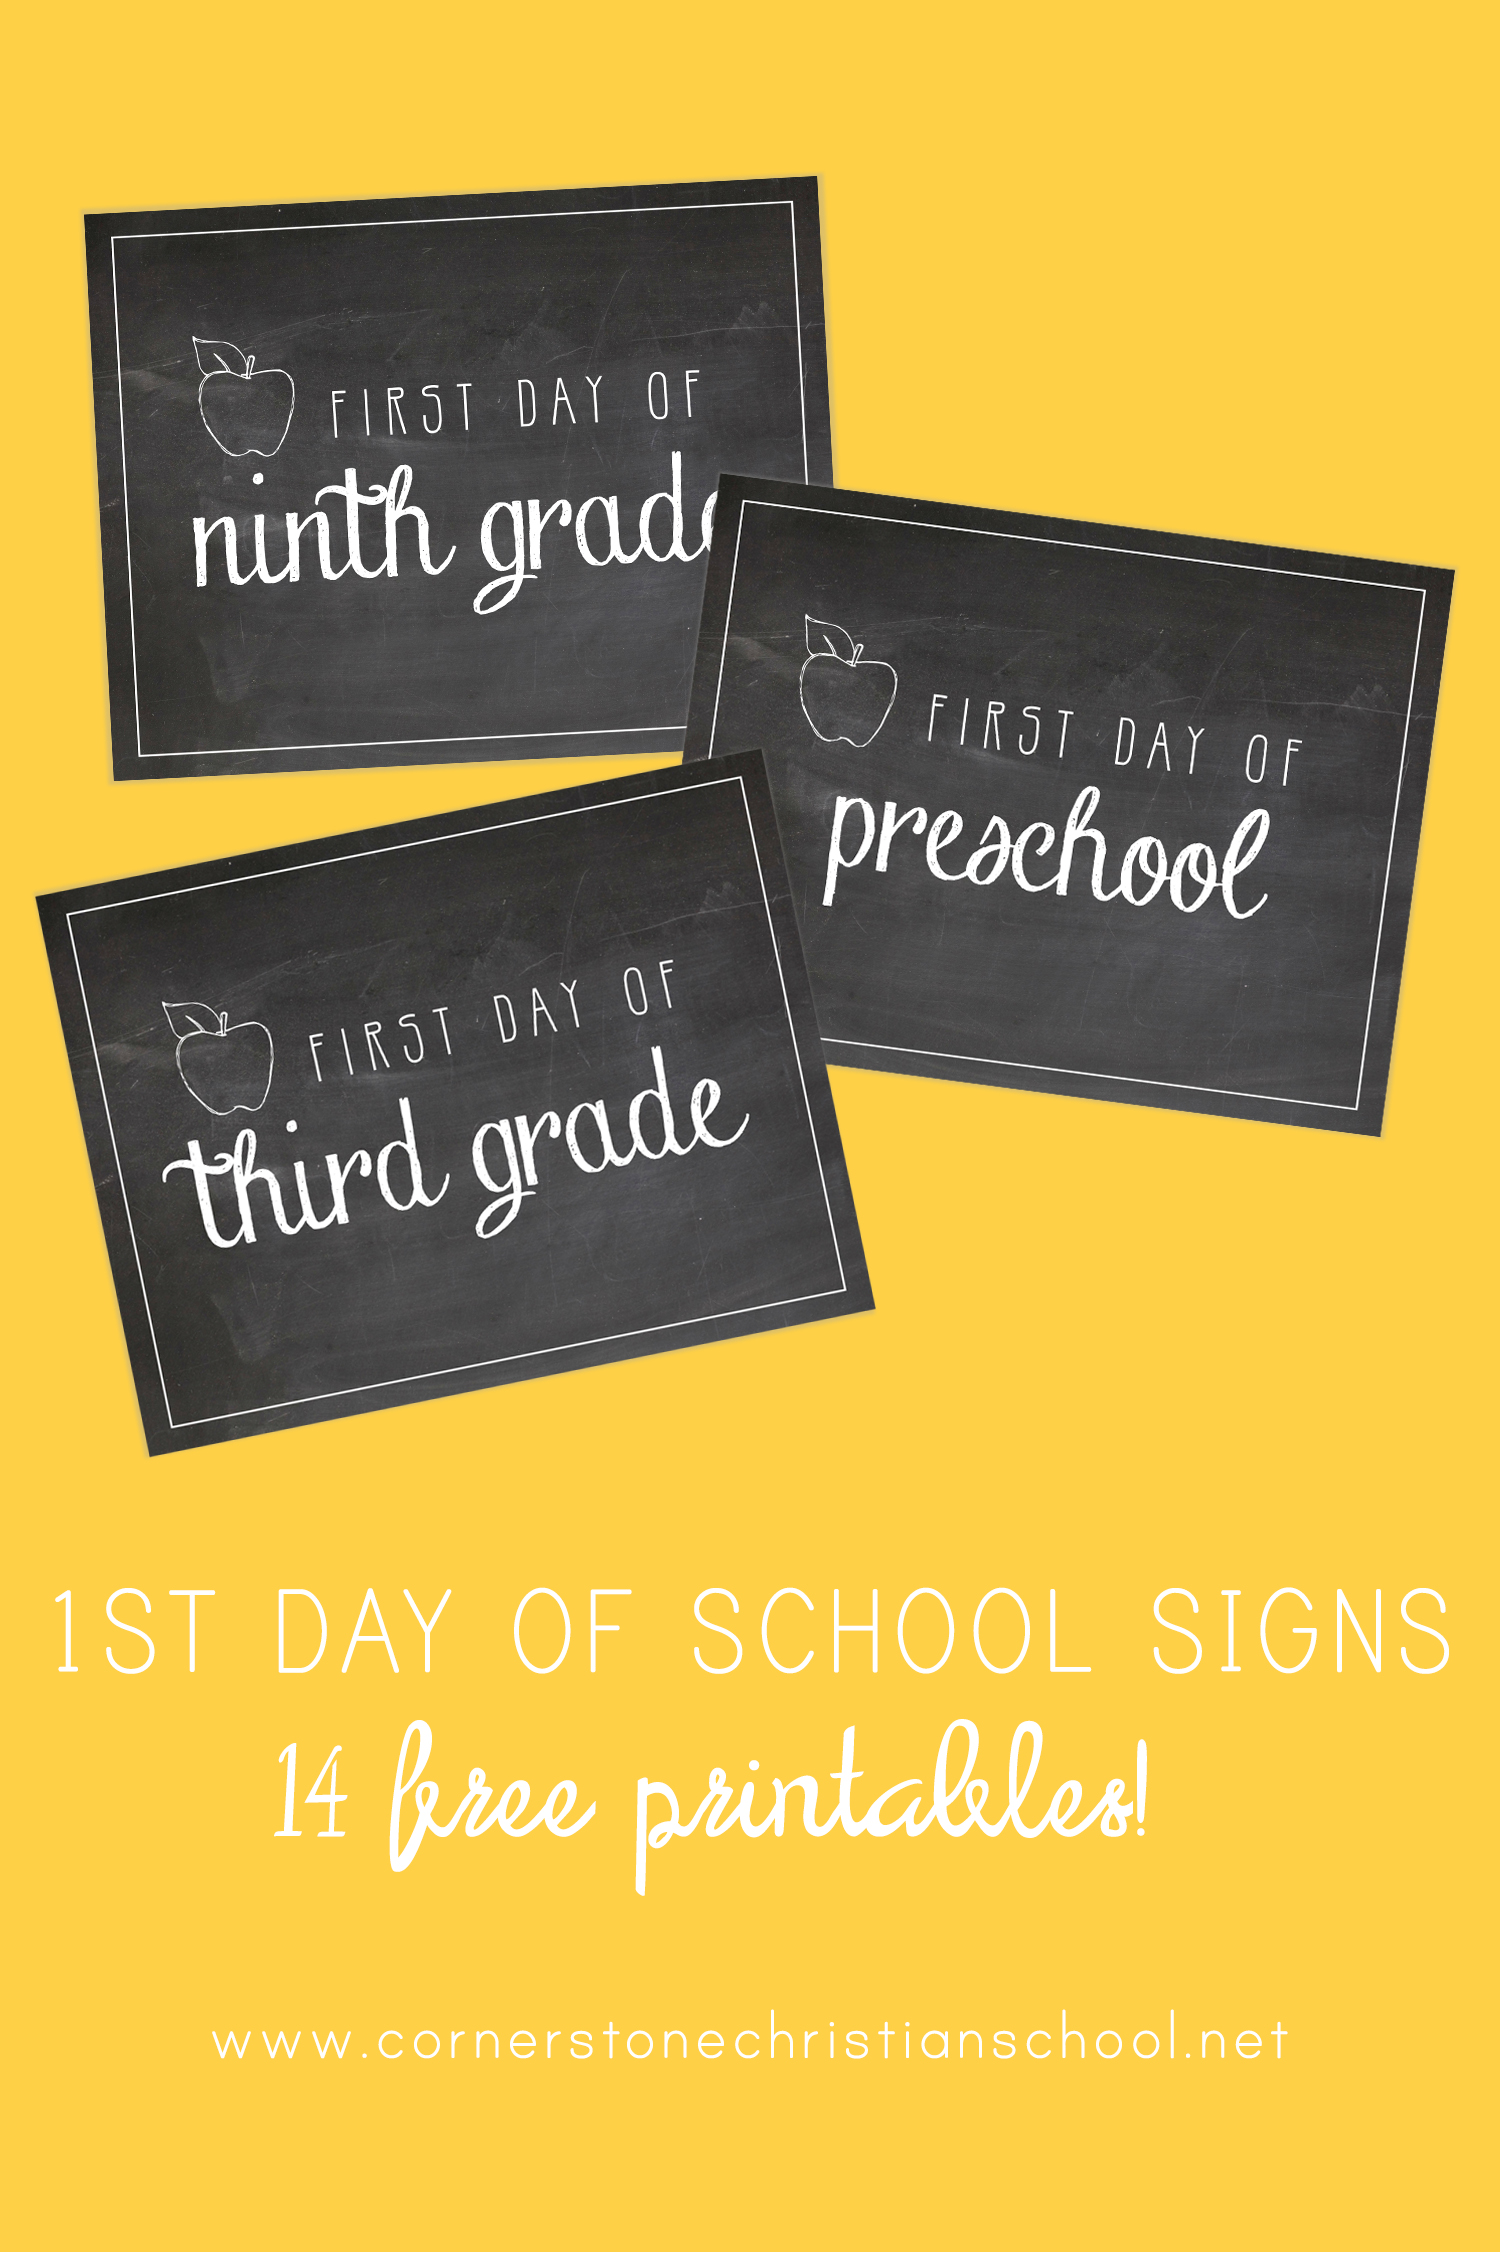 First Day of School Signs // FREE download // Cornerstone Christian School